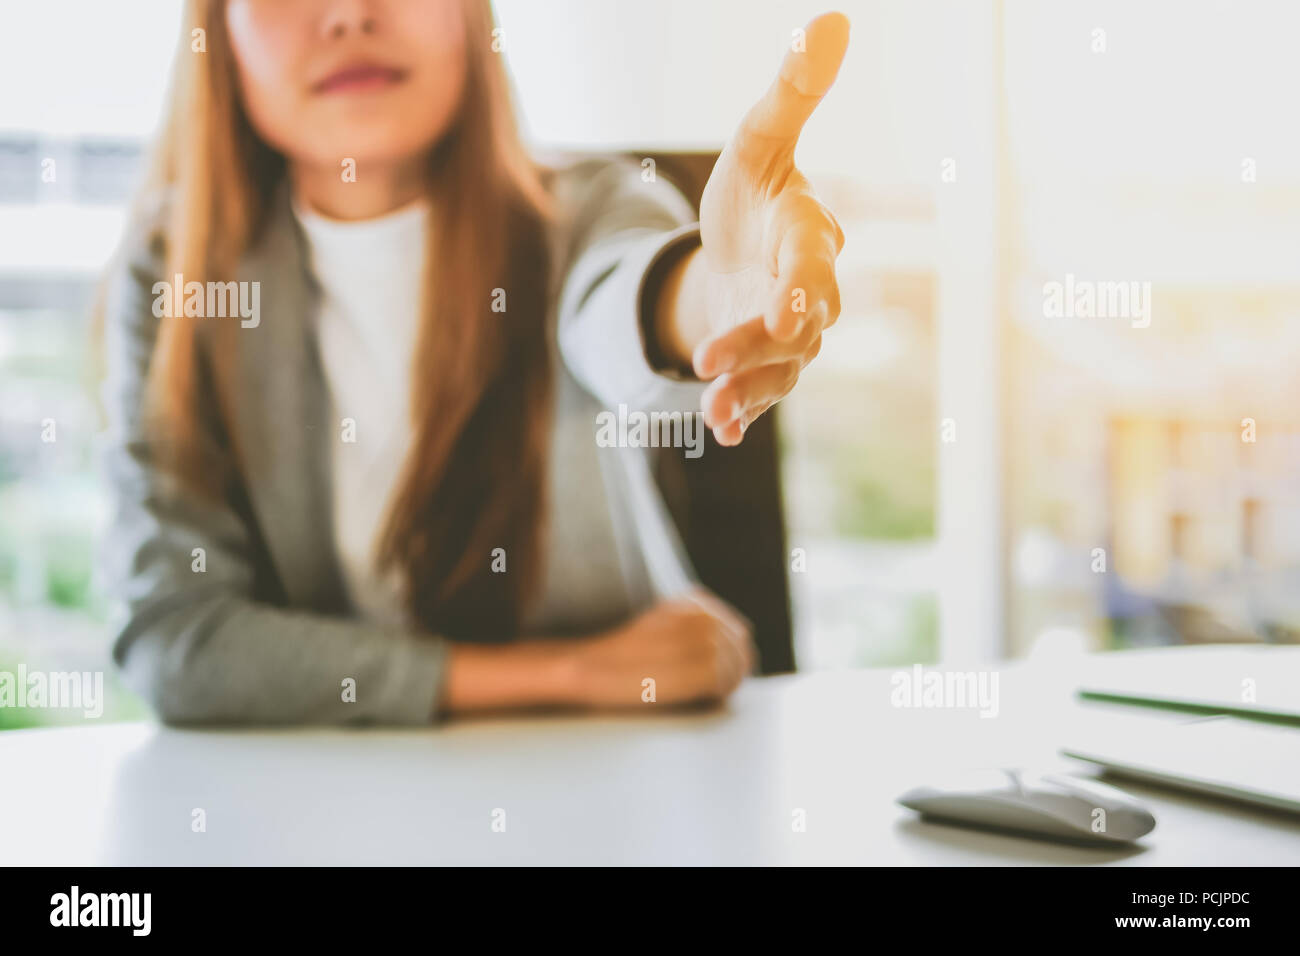 Business woman giving her hand for handshake to partner ,partnership concept - Stock Image